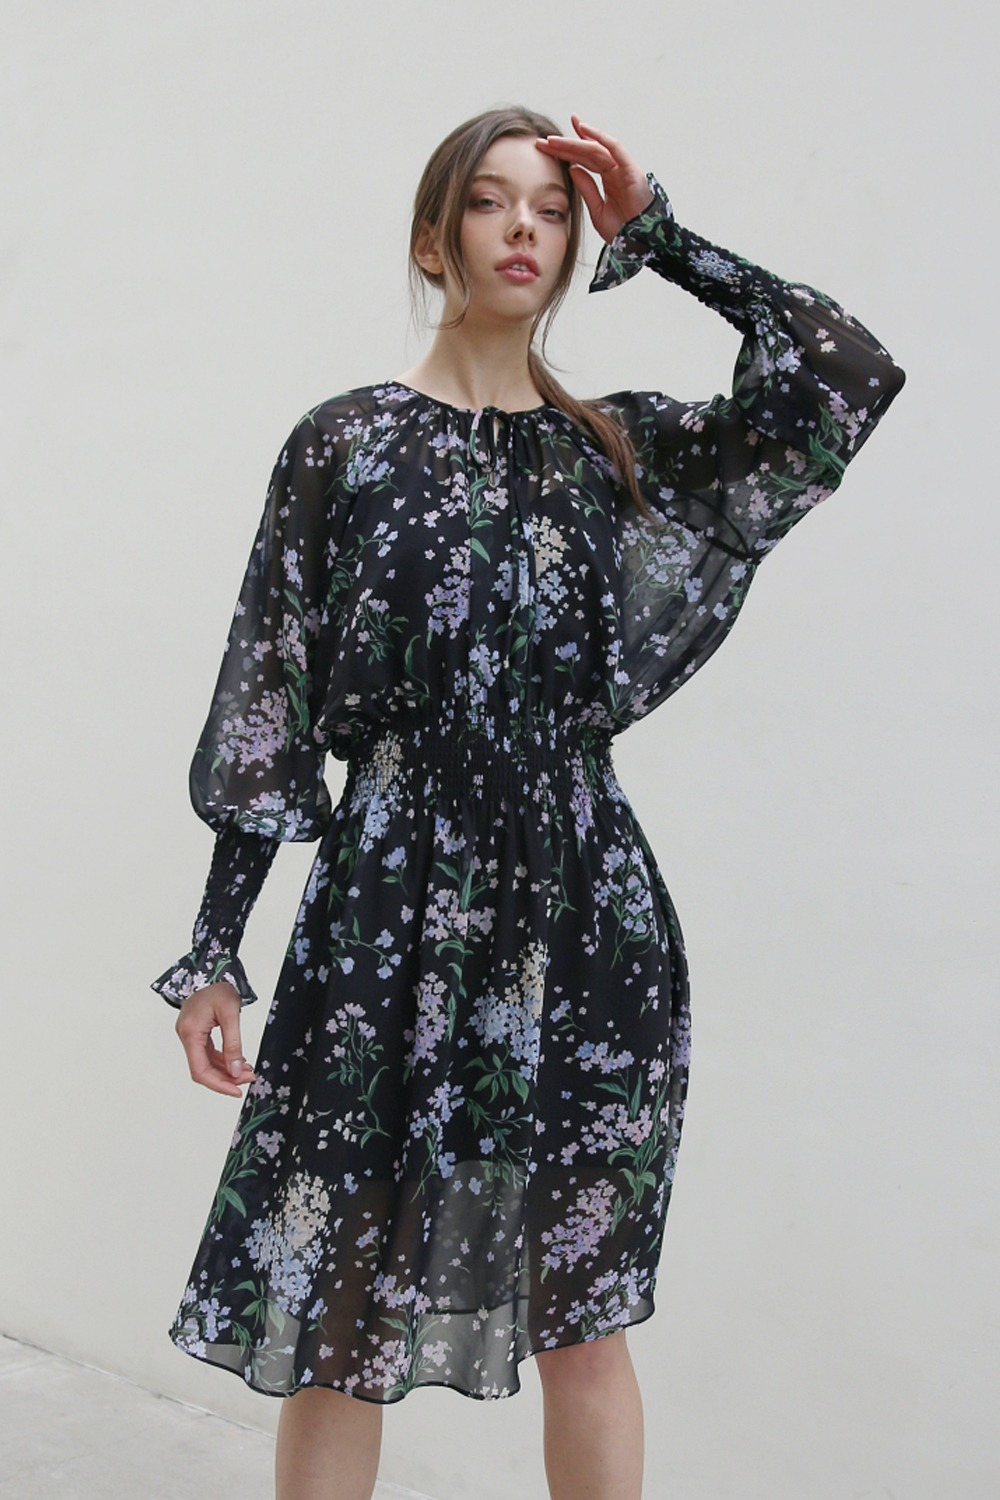 Windy flower chiffon dress